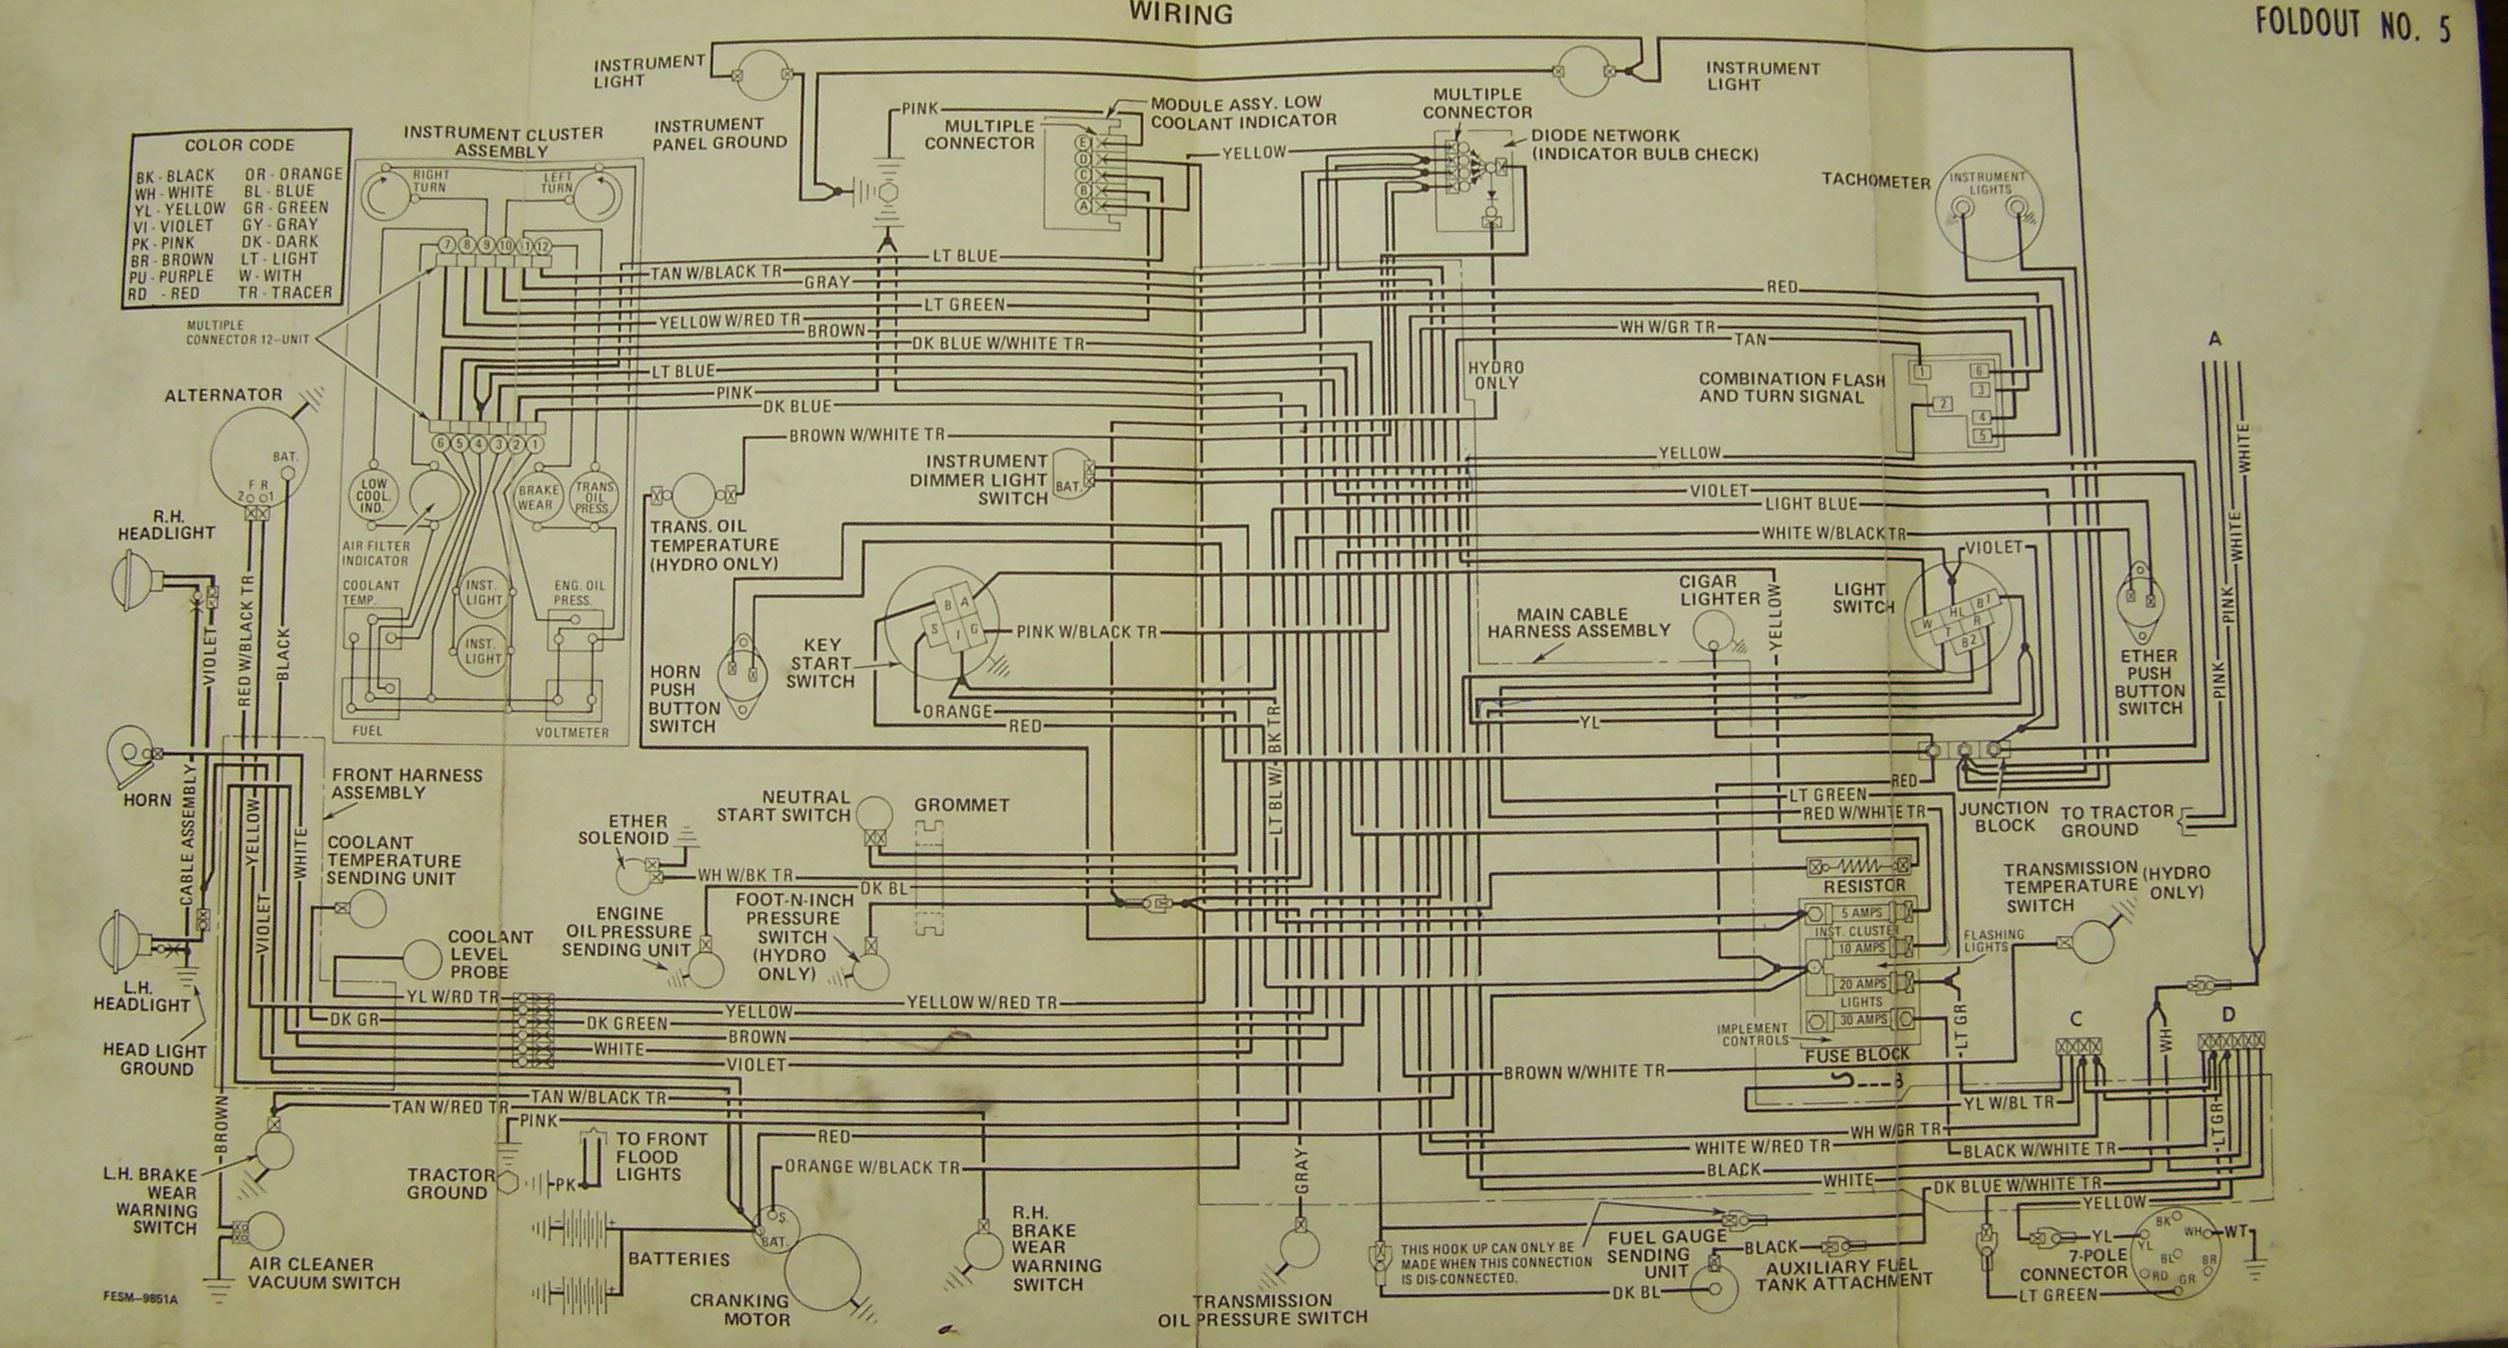 86series5 case ih 5240 wiring diagram wiring diagram and schematic design fordson super major wiring diagram at creativeand.co